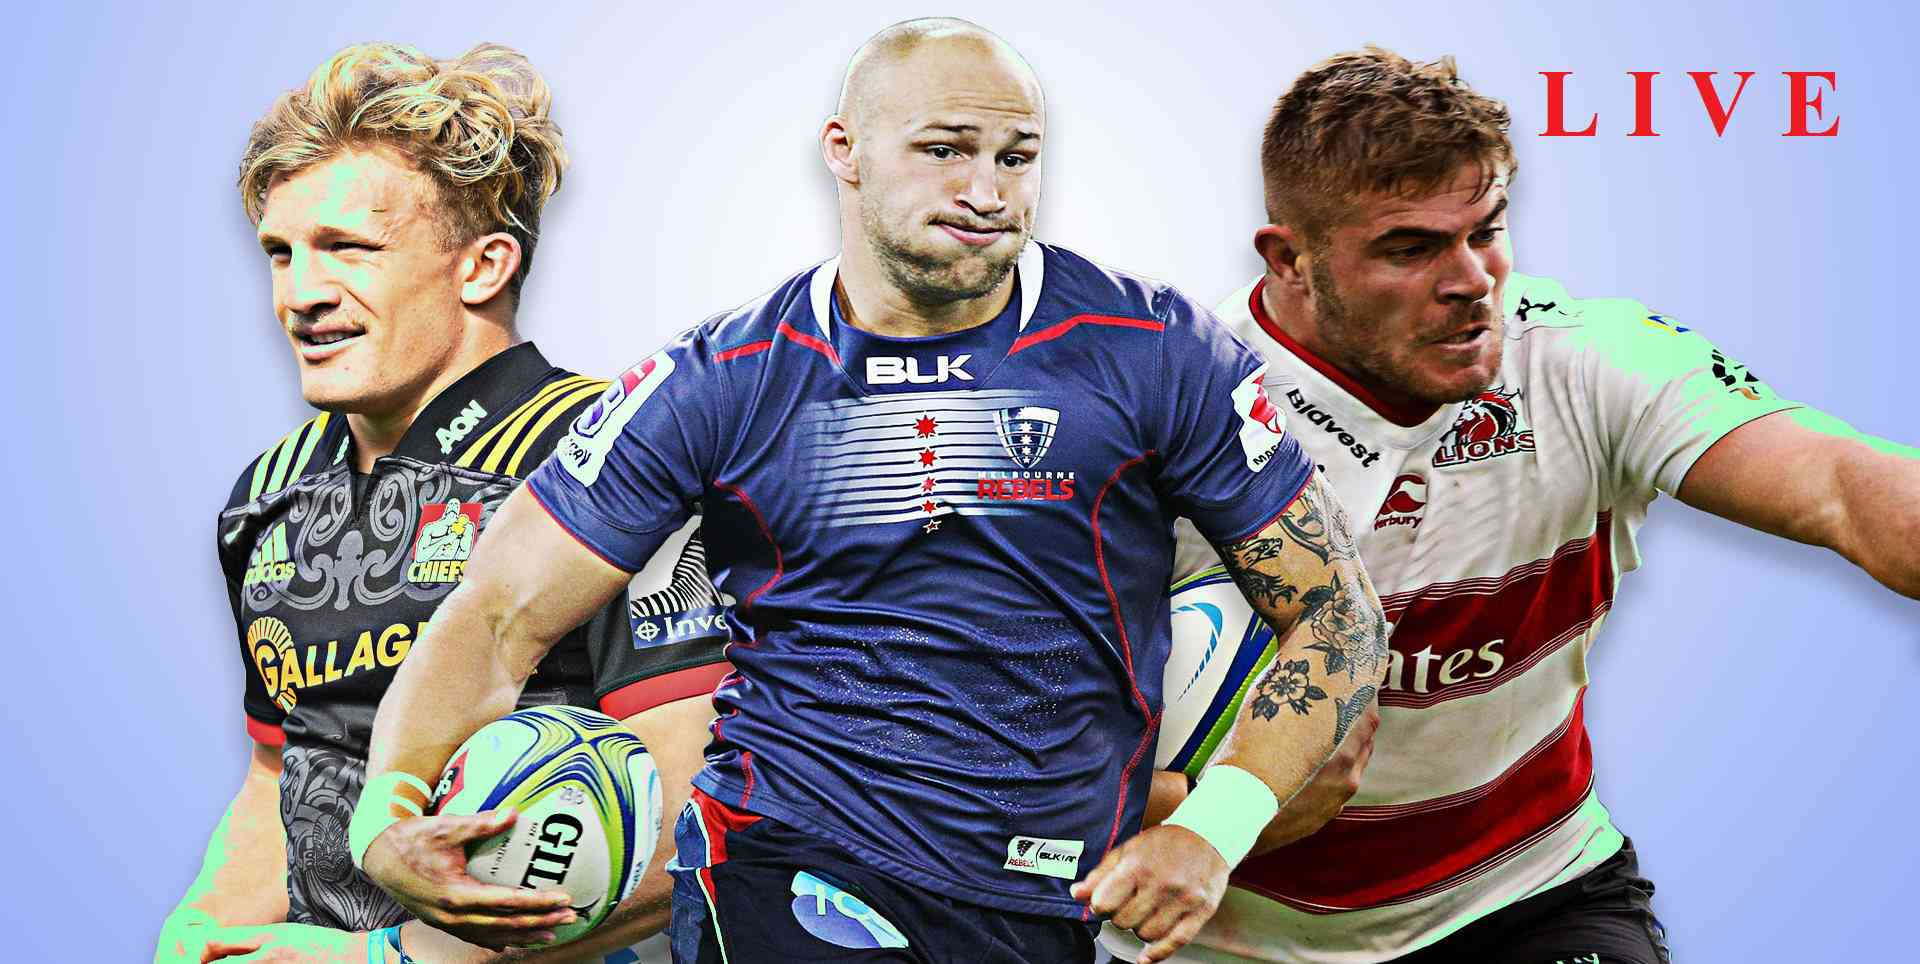 live-saracens-vs-sale-sharks-hd-stream